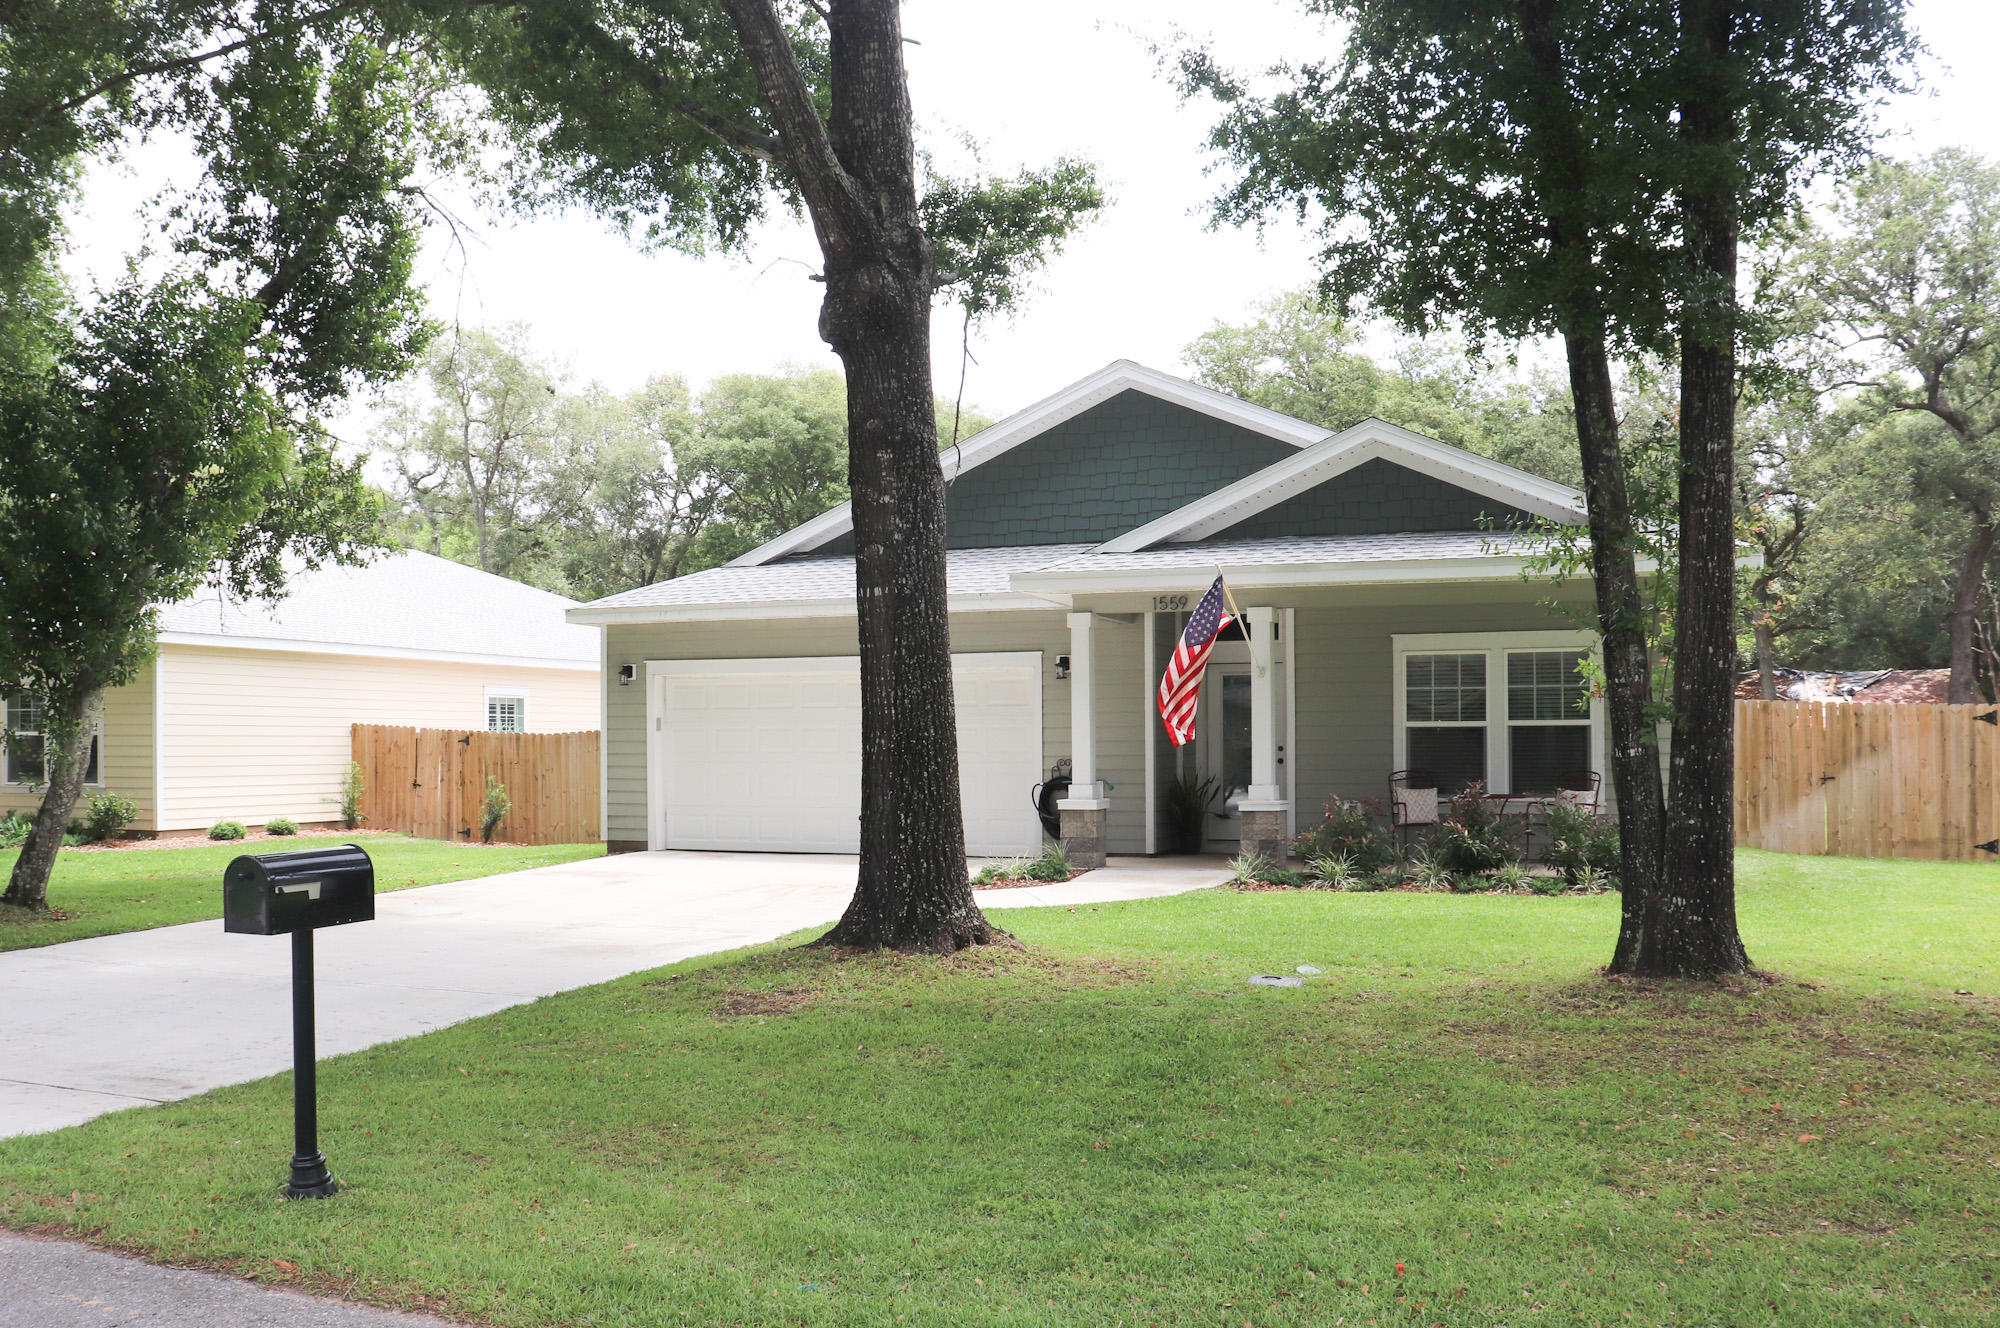 Gorgeous 1-year new 4 bedroom home located convenient to EVERYTHING! Nicevillle school zone,  east e